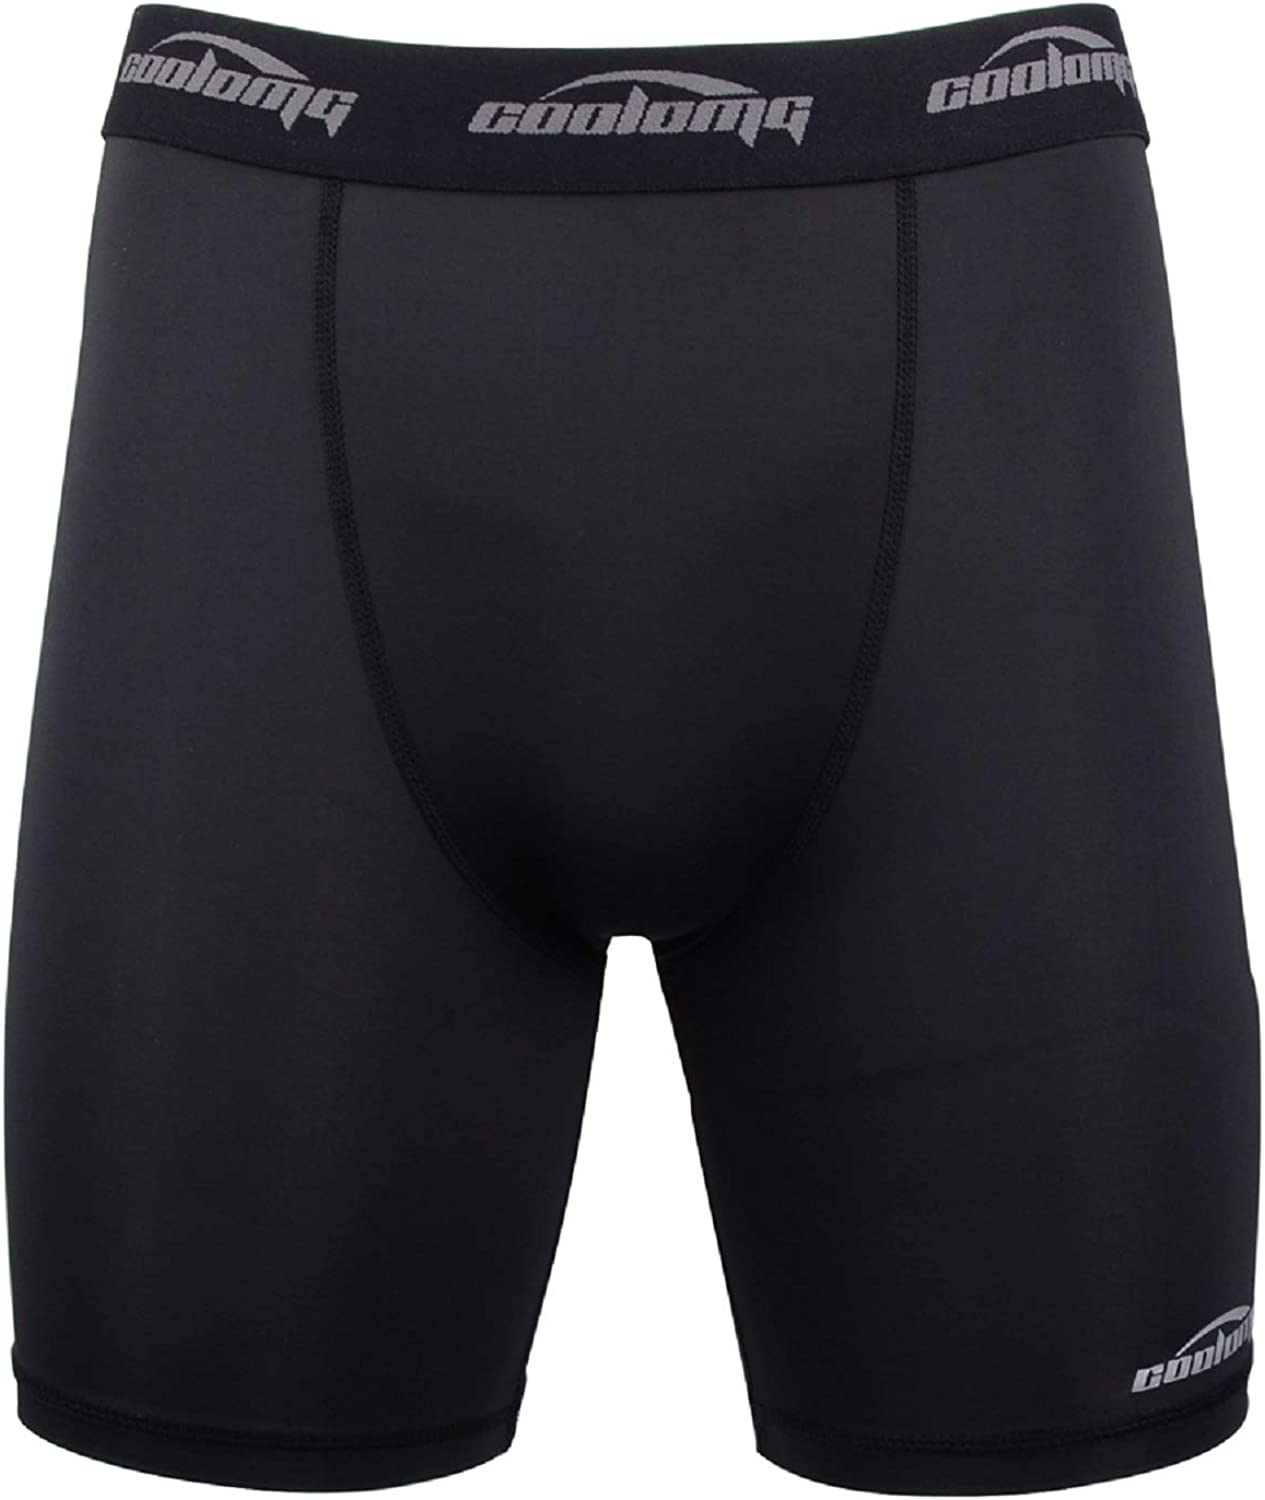 COOLOMG Mens Compression Shorts 5.5 Cool Dry Sport Tights Training Baselayer for Boys Youth